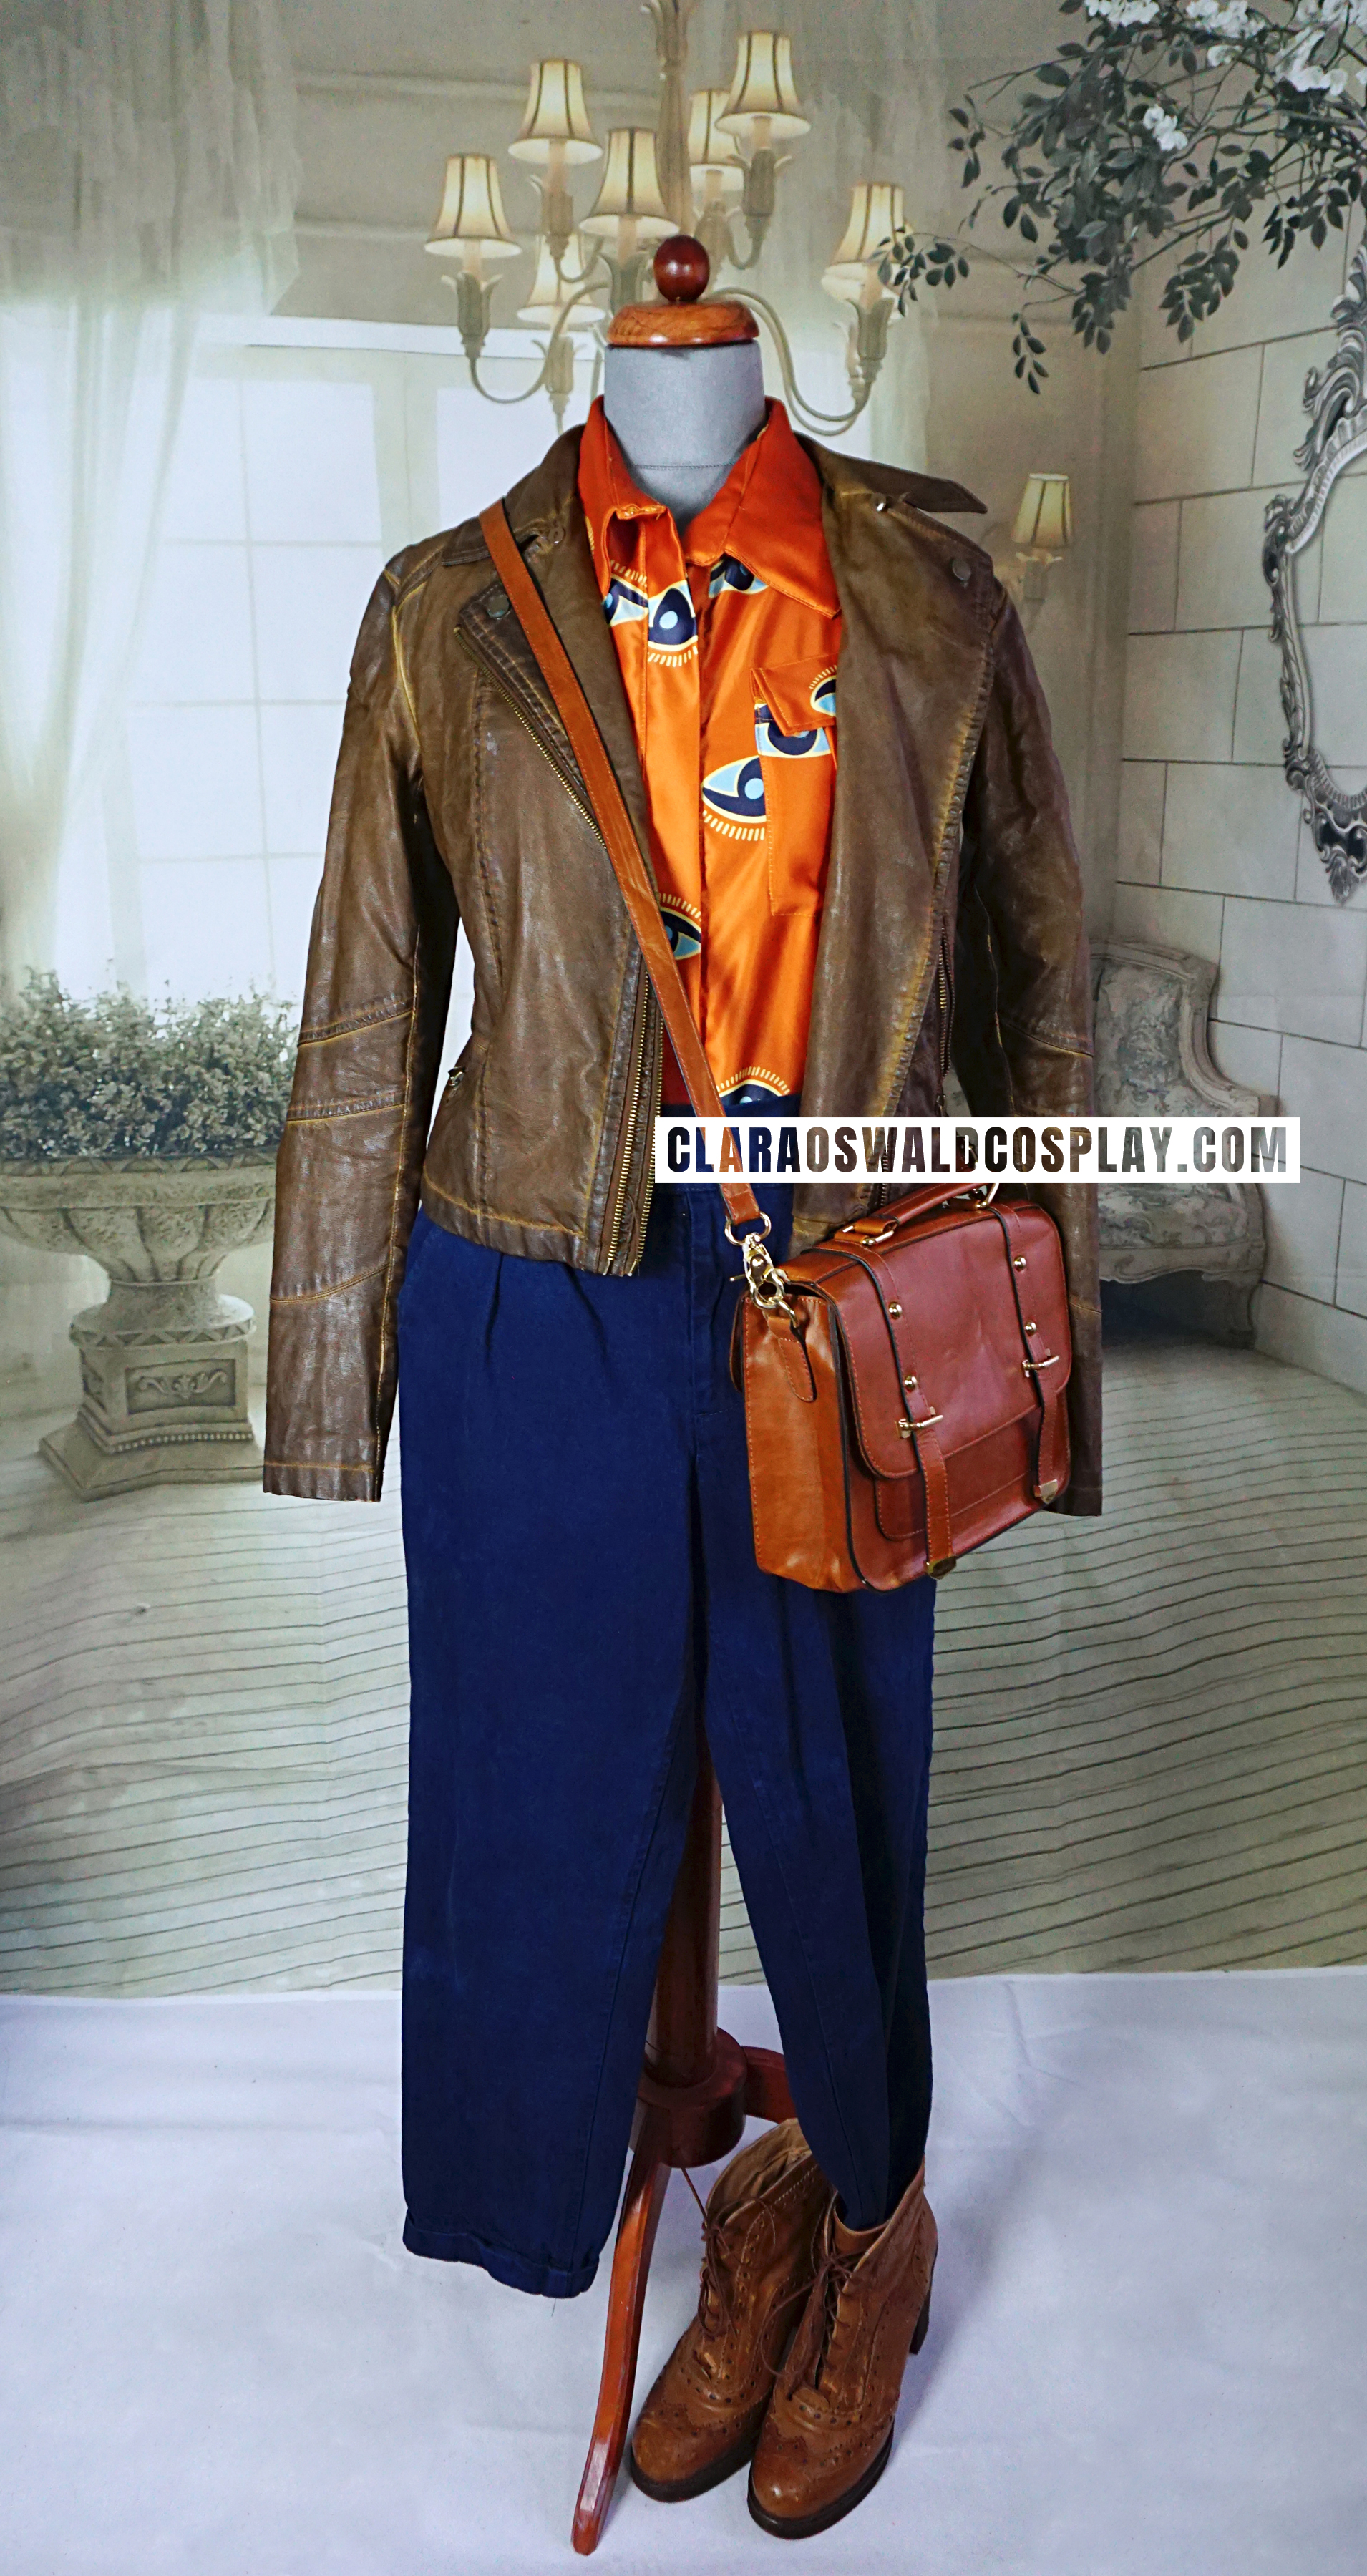 Clara Oswald's Into The Dalek outfit featuring the River Island Brown Leather Jacket with detachable fur collar, Shalex Orange Eye Blouse, ASOS Just Female Denim Trousers and River Island Brogue Ankle Boots